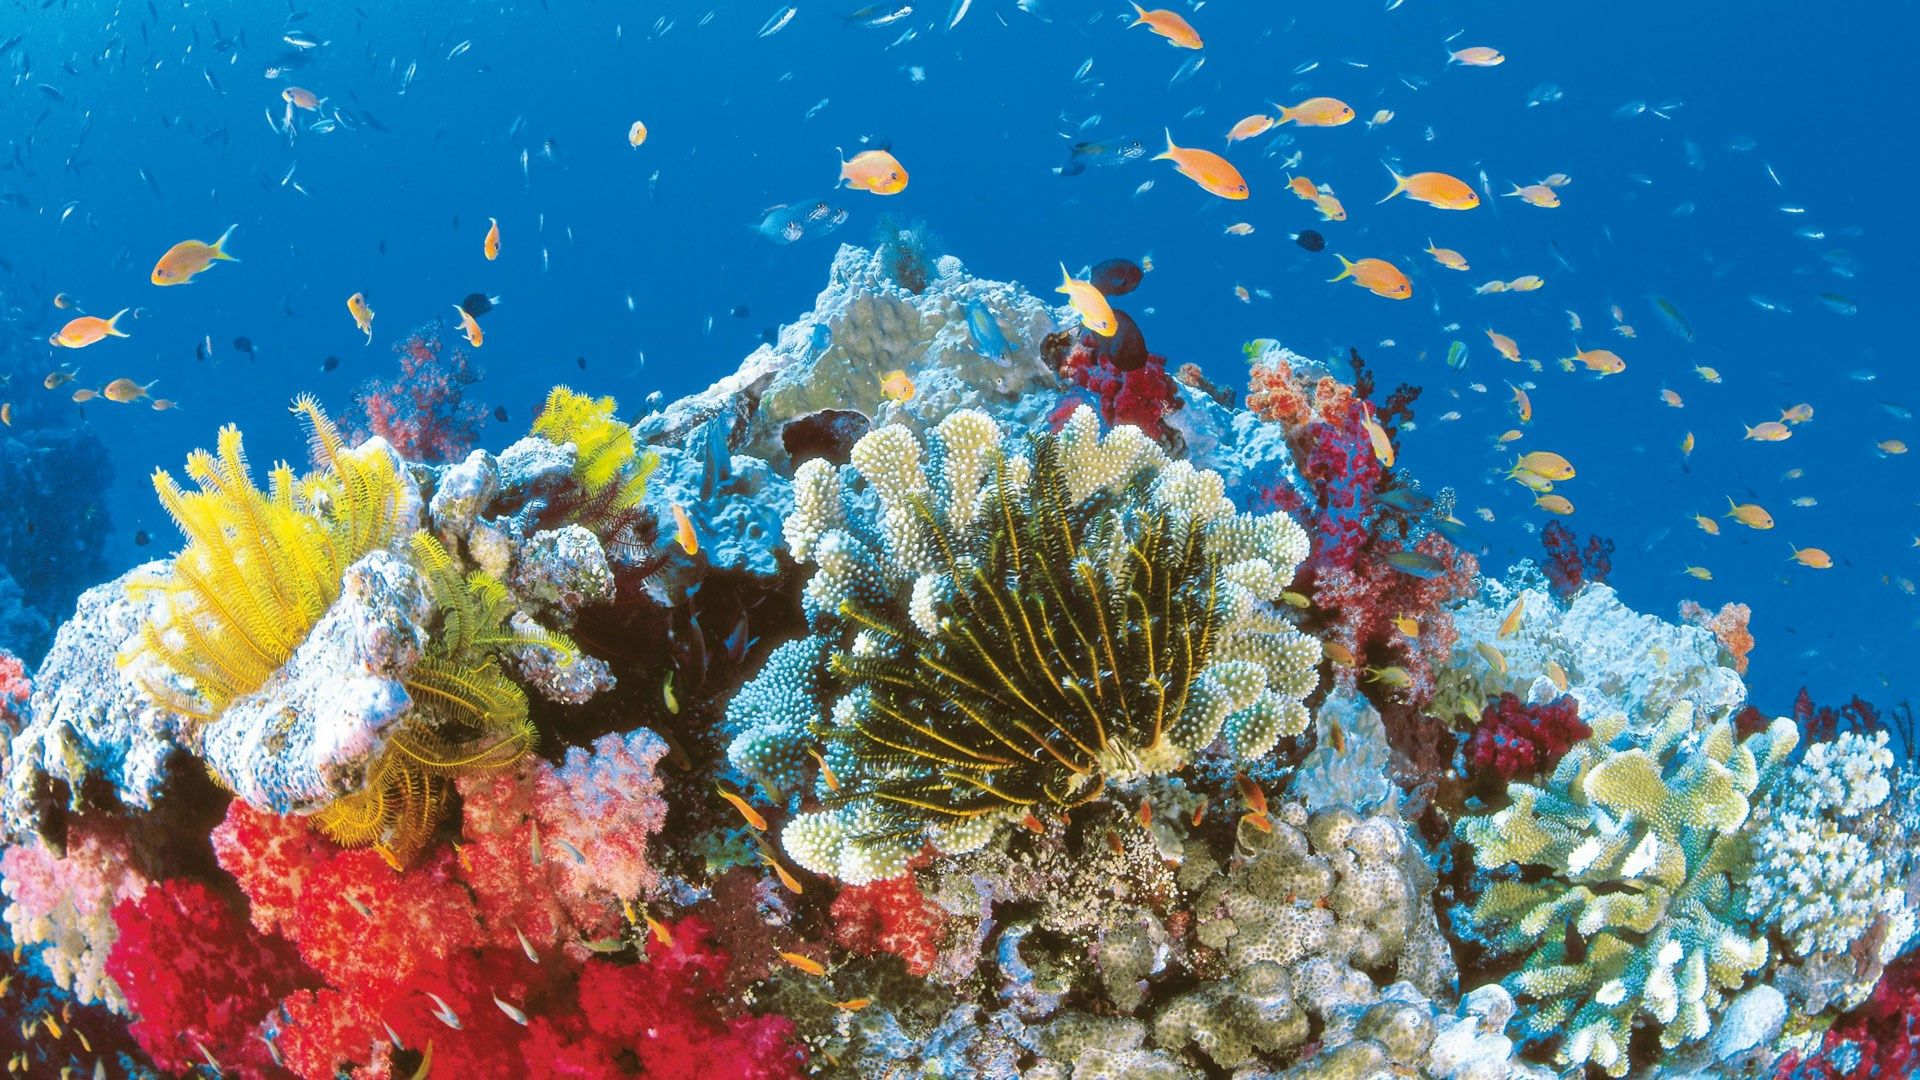 free high resolution wallpaper great barrier reef, 598 kb - rider